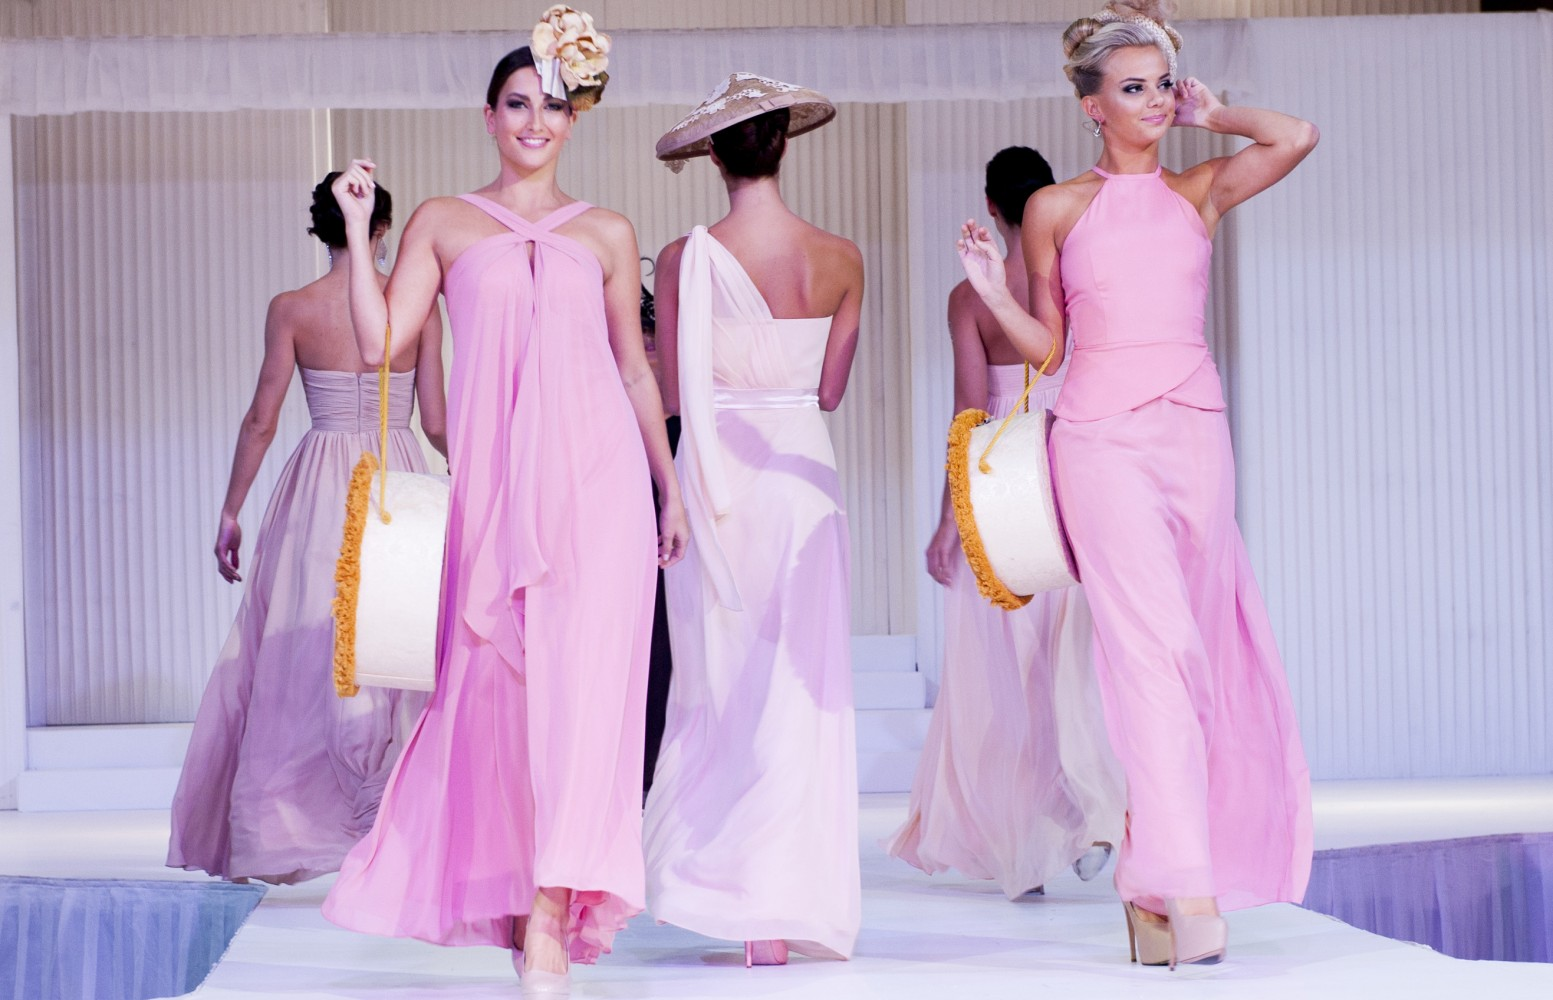 sydney bridal expo natasha millani bridesmaid dresses pink 1553x1000